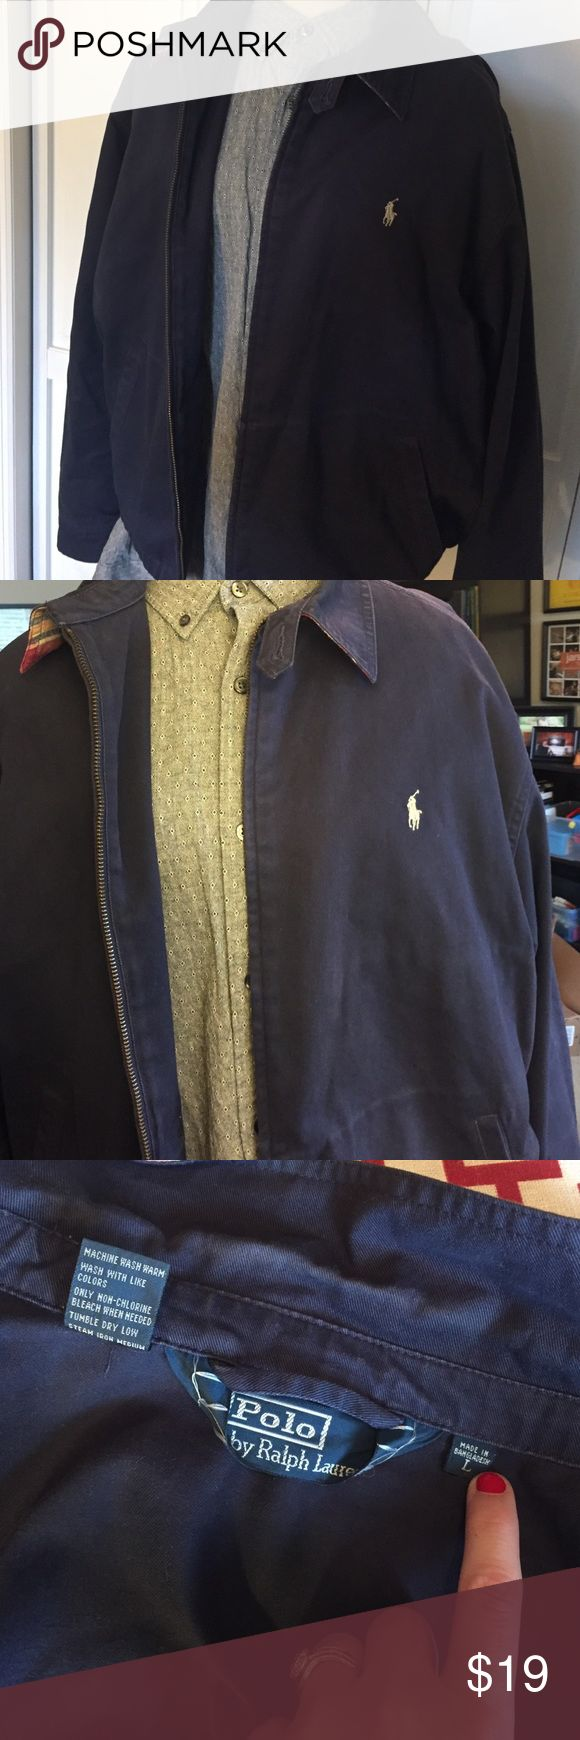 Navy Polo Ralph Lauren Coat This coat is in excellent condition, and has only been worn a handful of times. There is a plaid detail under the collar, and it zips up in the front. There are two lower outer pockets, and an interior pocket Polo by Ralph Lauren Jackets & Coats